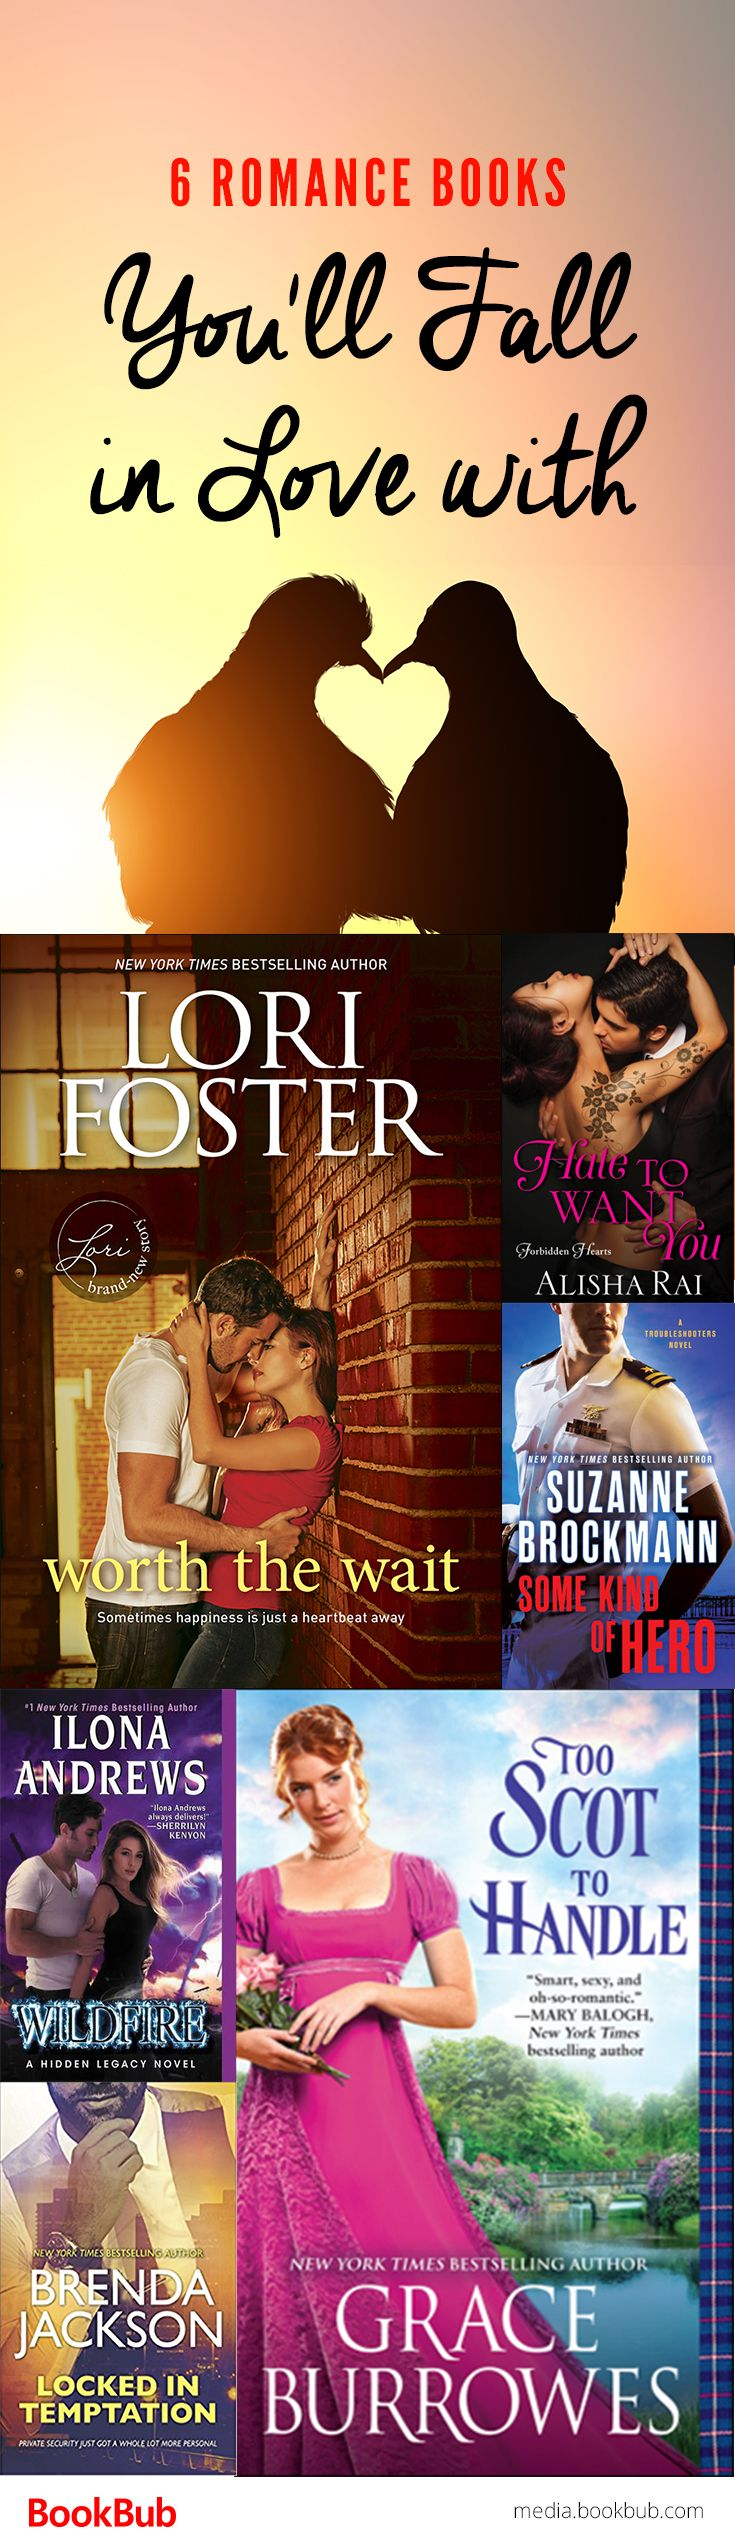 6 romance books worth reading, featuring a mix of steamy, hot romances with sweet contemporary romance books.